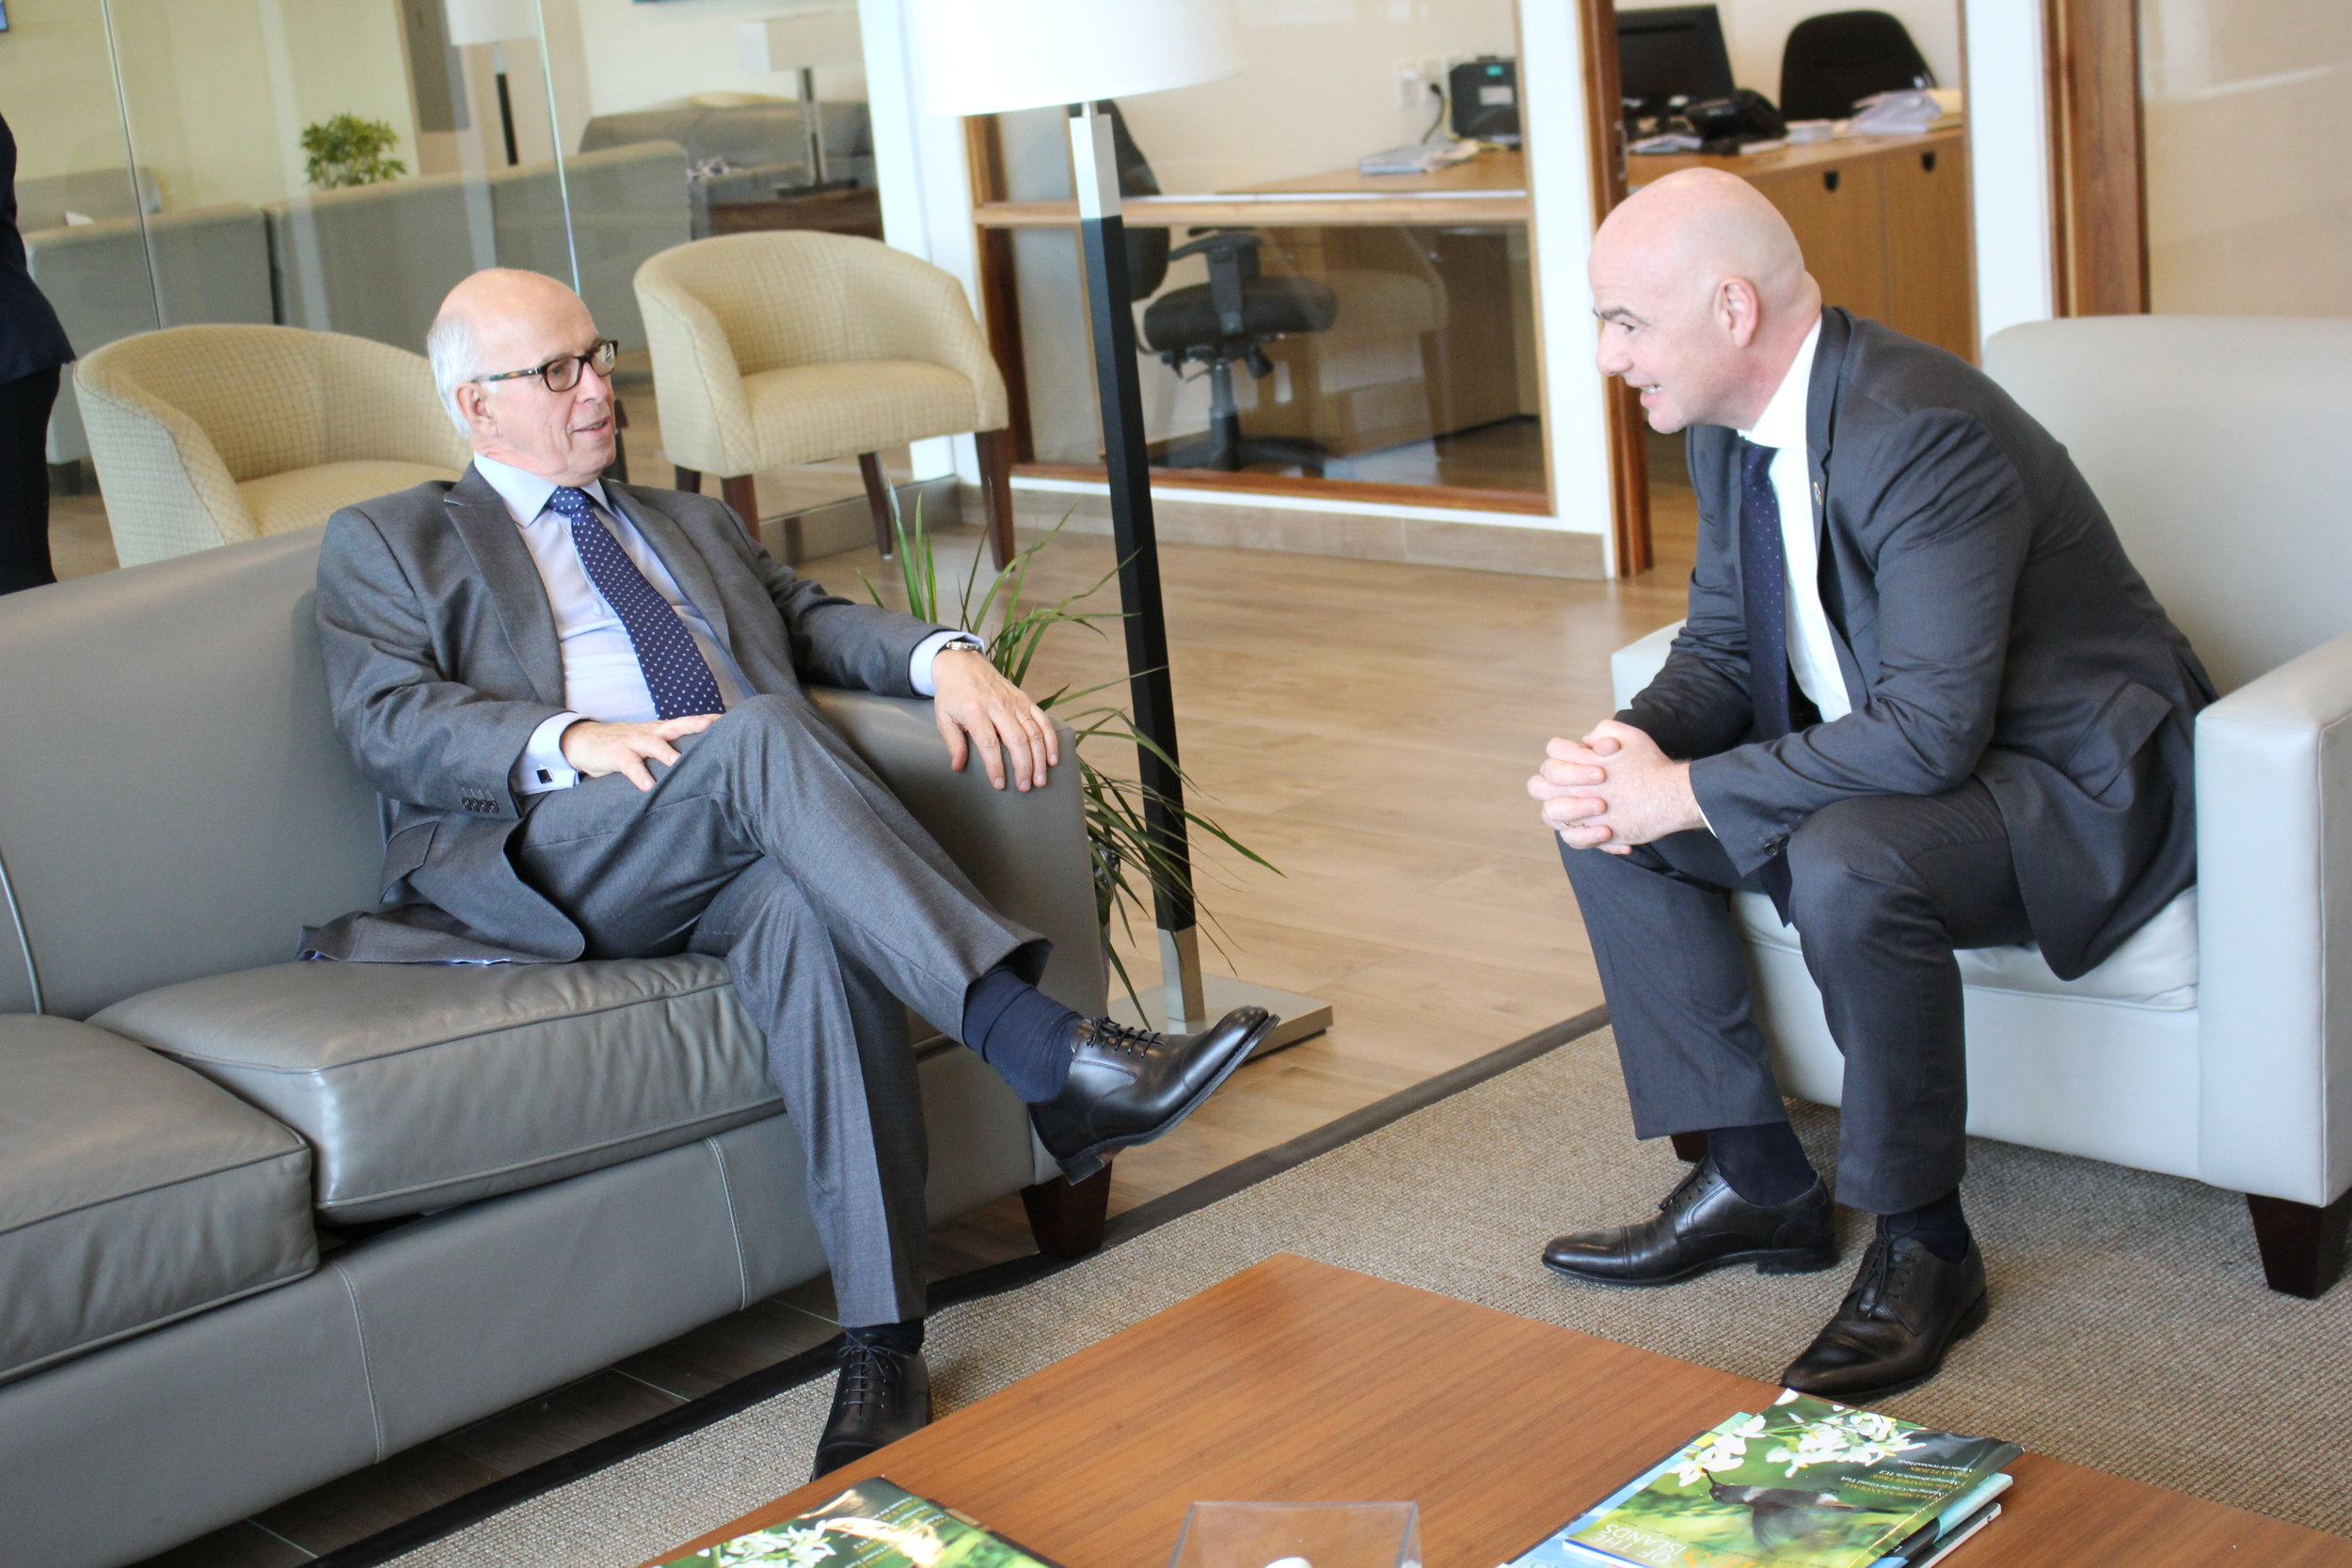 His Excellency Dr. John Freeman, FIFA President Gianni Infantino